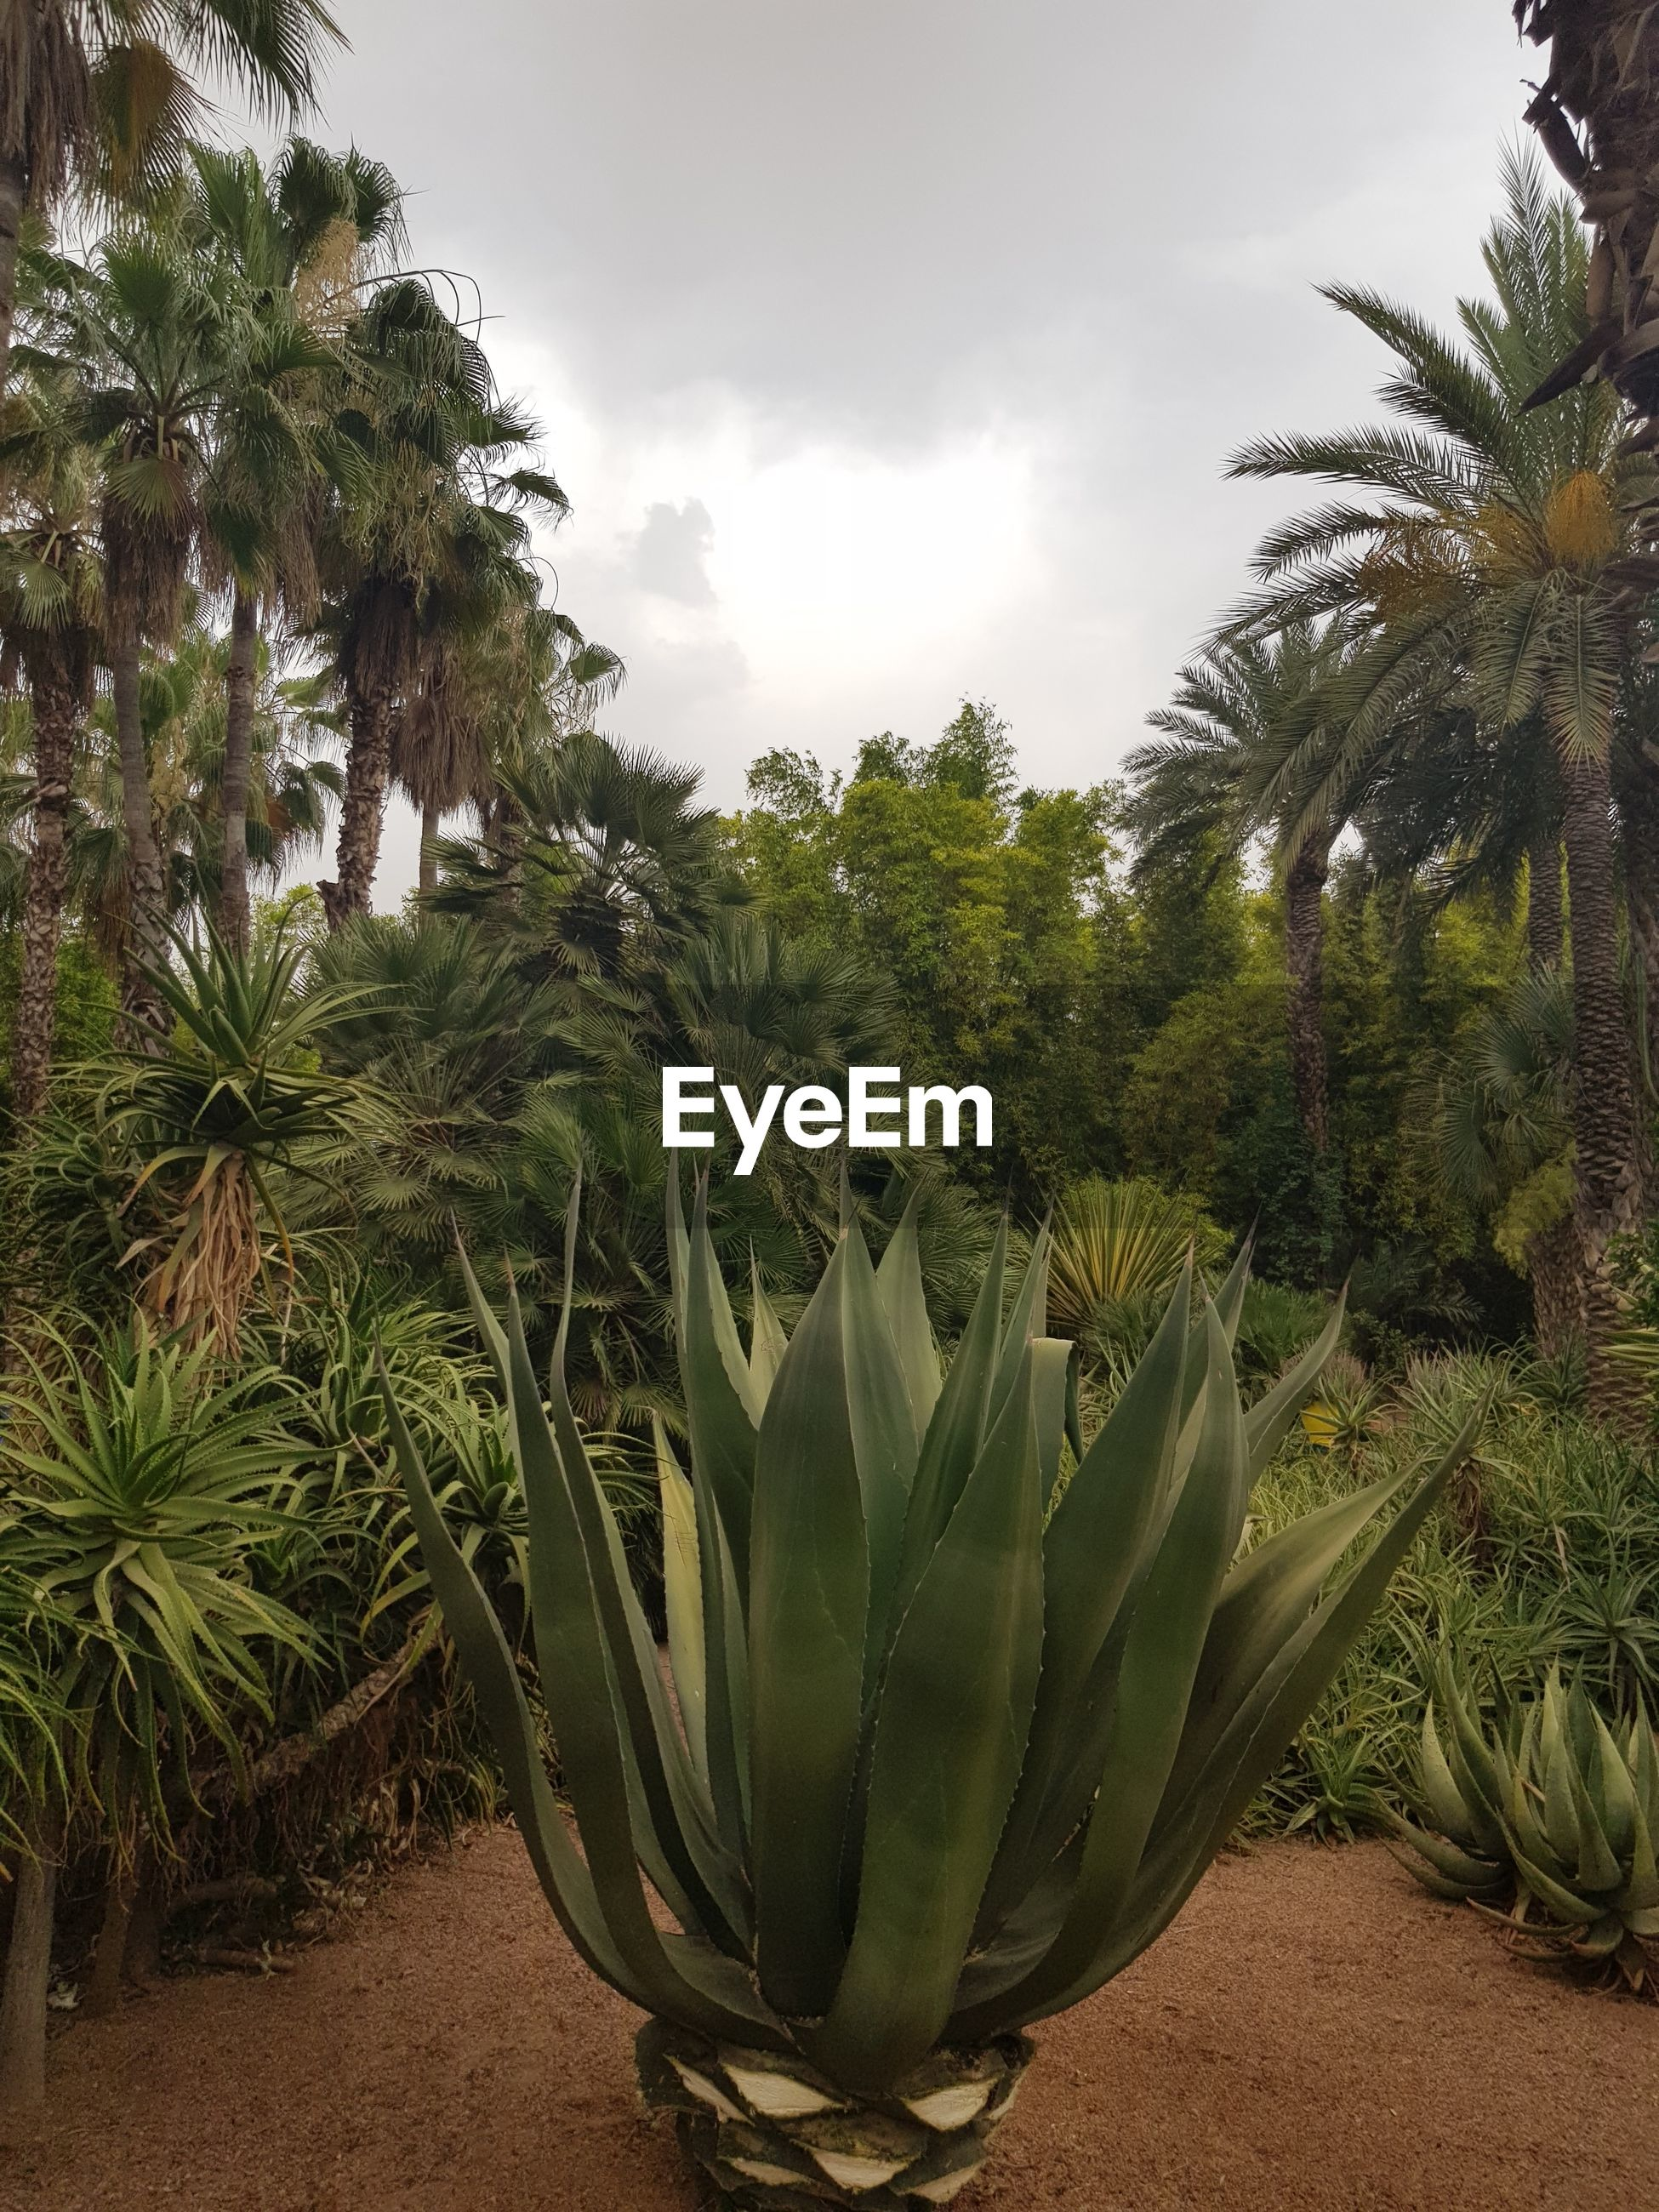 CLOSE-UP OF PALM TREES AND PLANTS GROWING ON FIELD